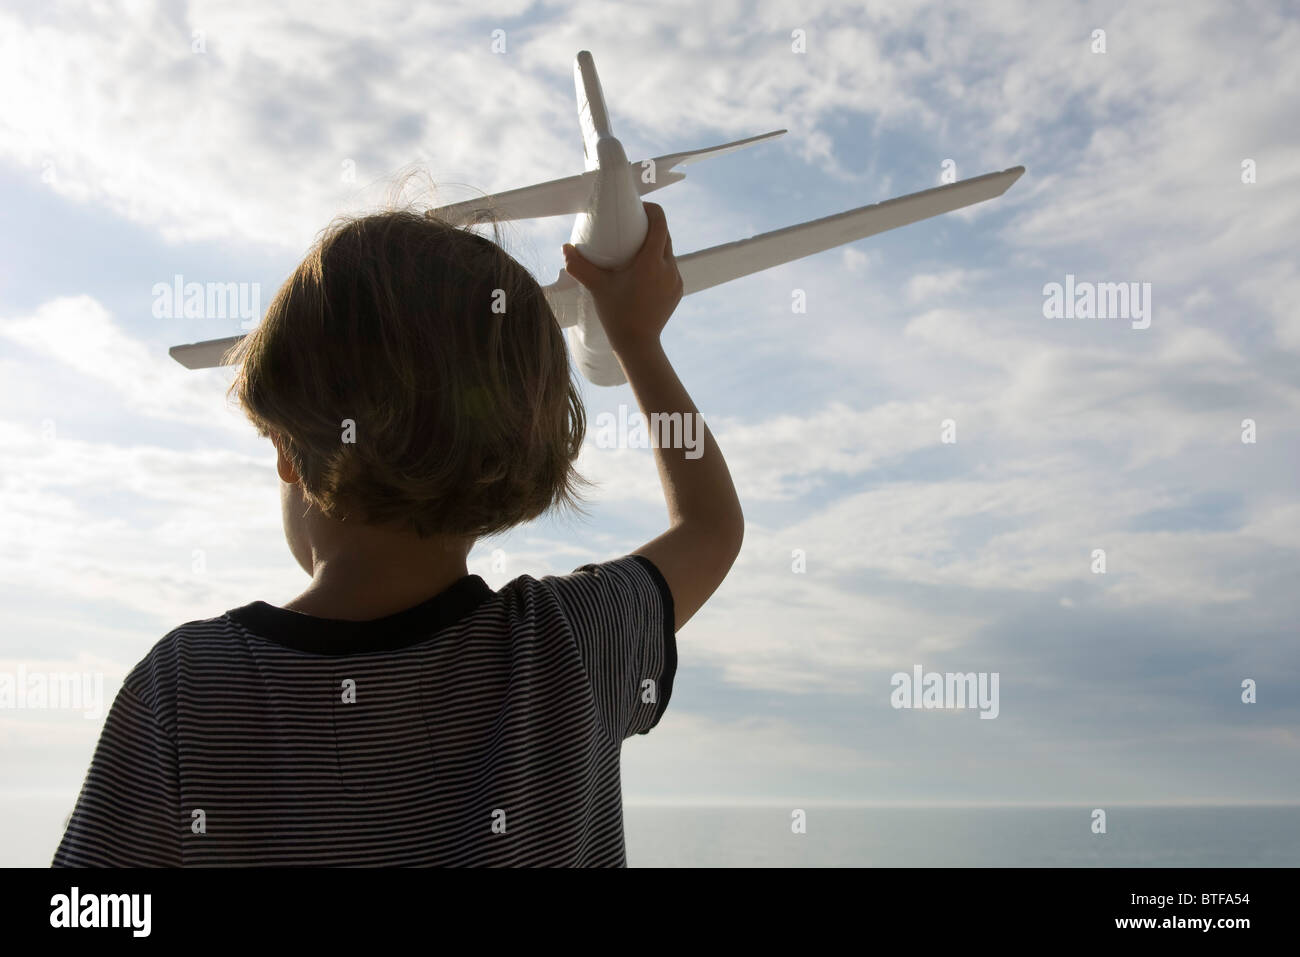 Boy playing with toy airplane, rear view - Stock Image